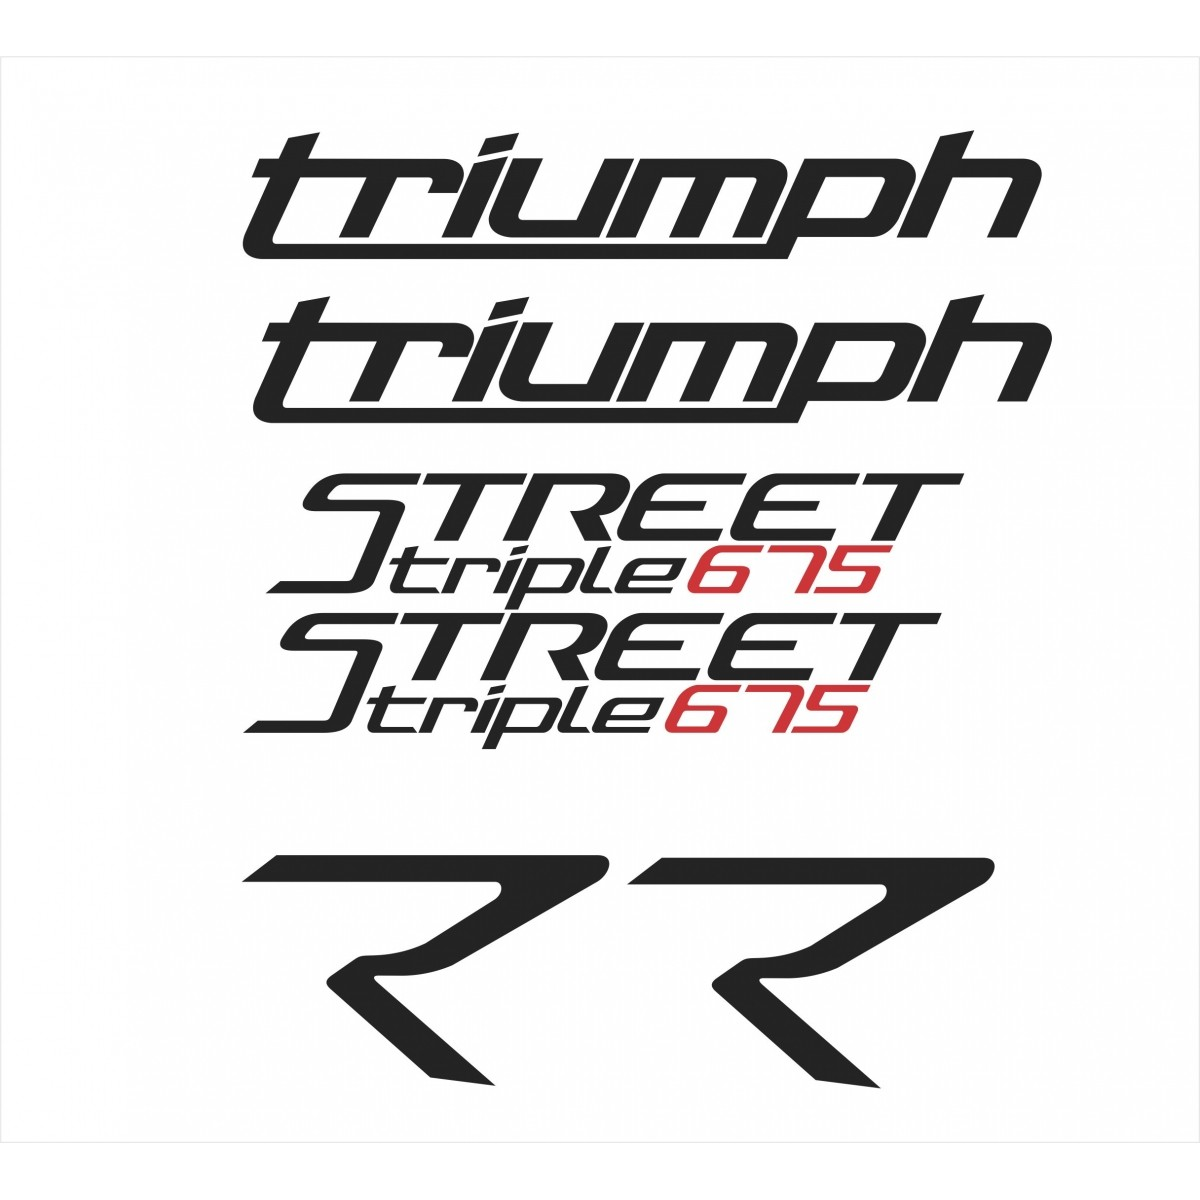 Kit Adesivos Triumph Speed Triple 675 R 2015 Branca St011